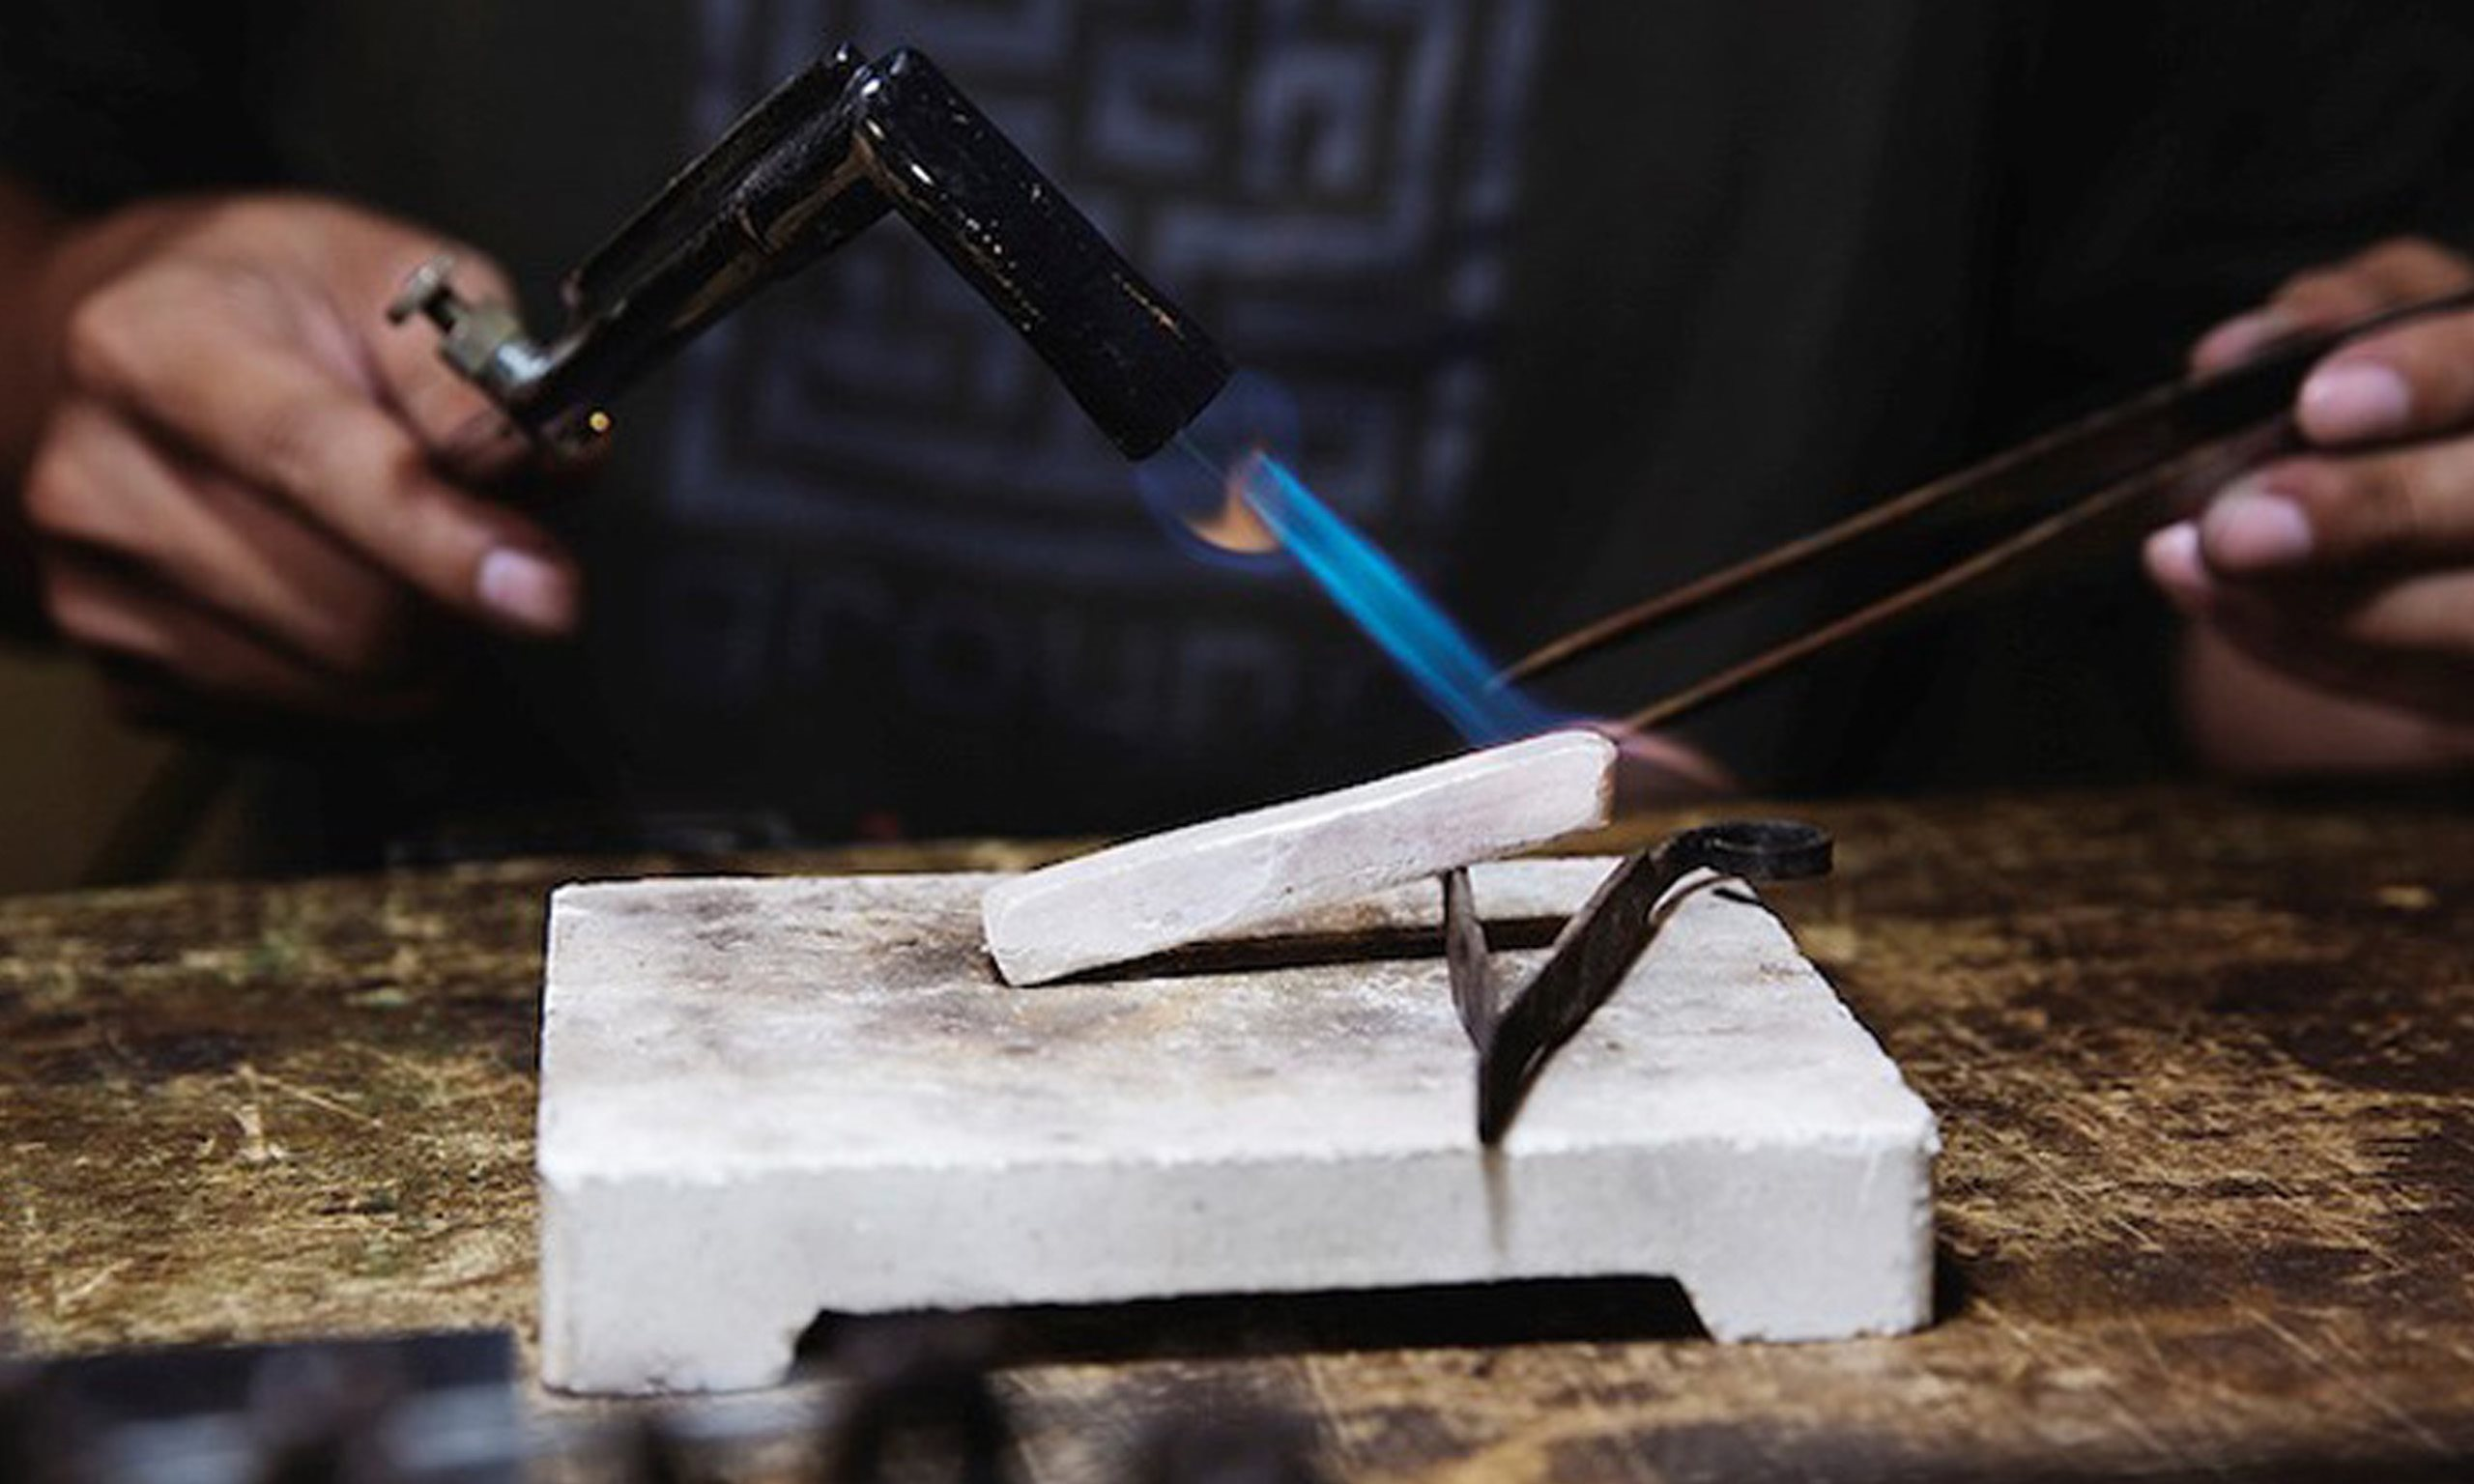 Metalworking DIY Experience Activities - Taiwan popular one-day tour in Sanxia